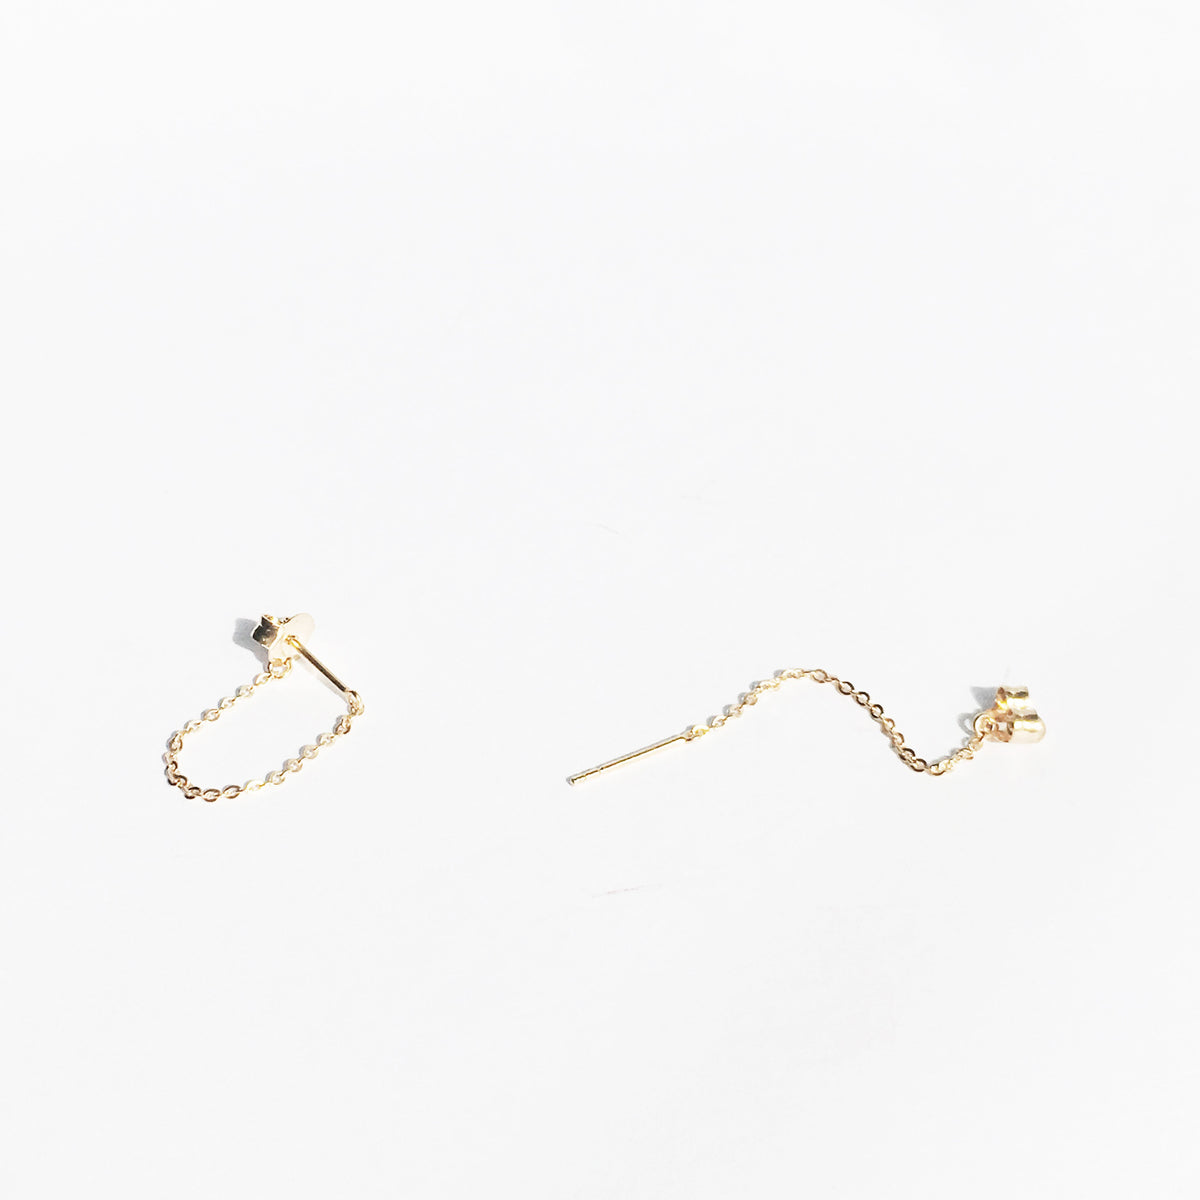 Gathershop Earrings from Lunai / Oorbellen  (7678486215)